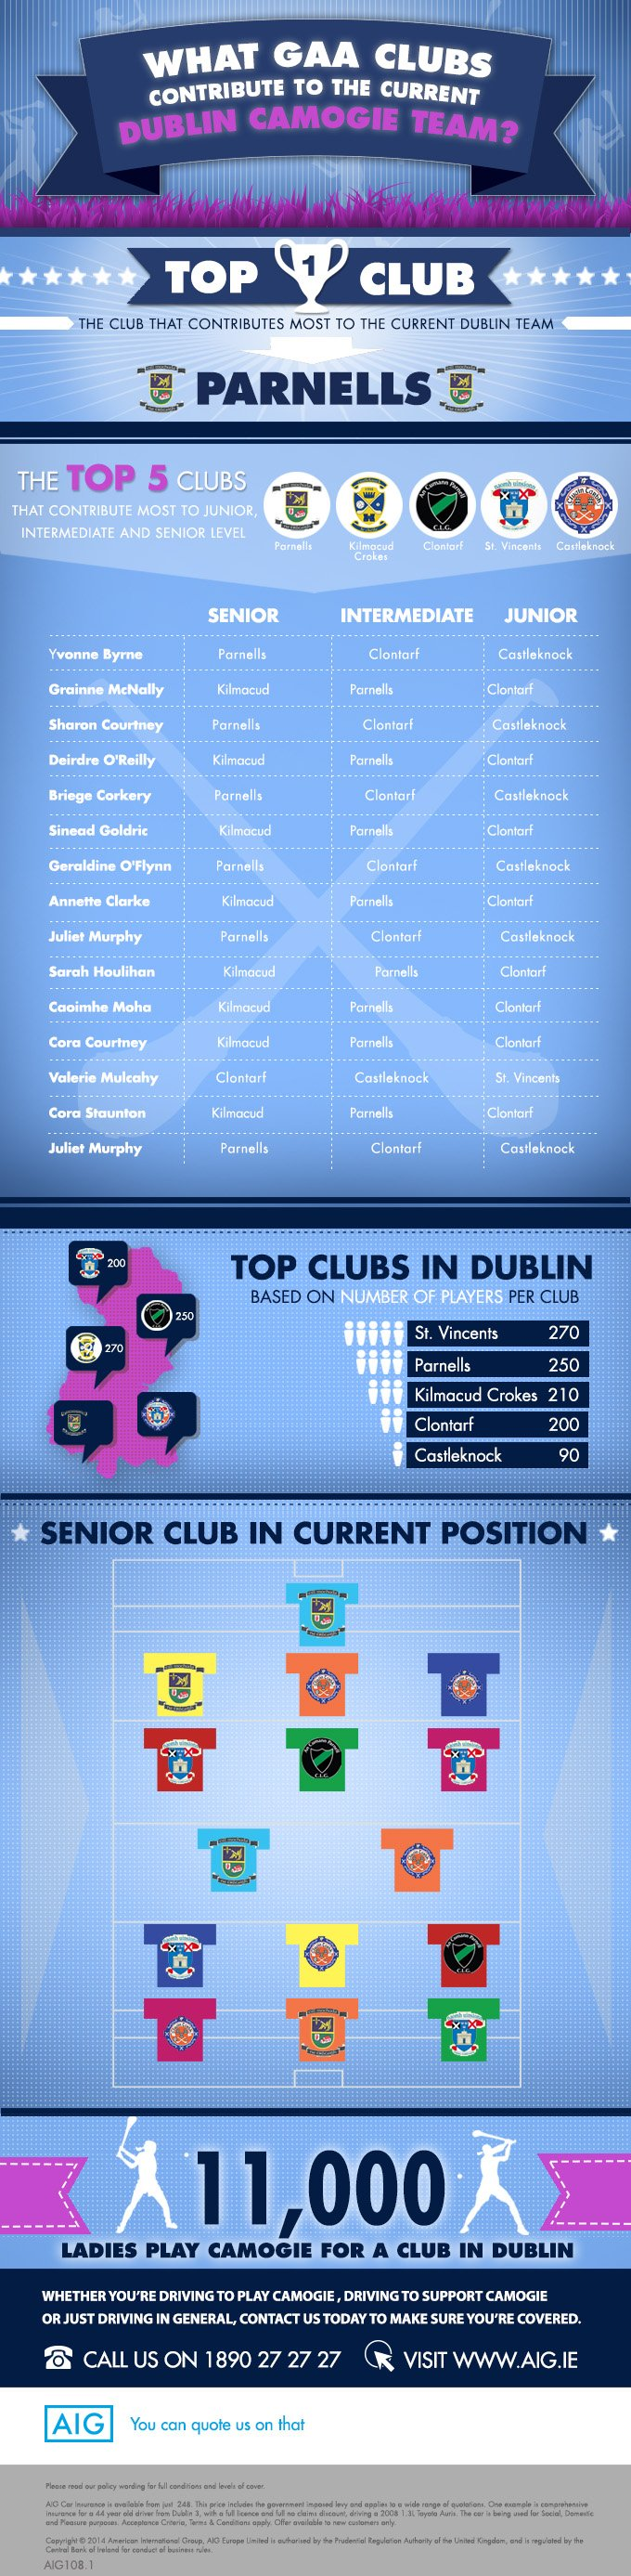 What GAA clubs contribute to the current Dublin Camogie team